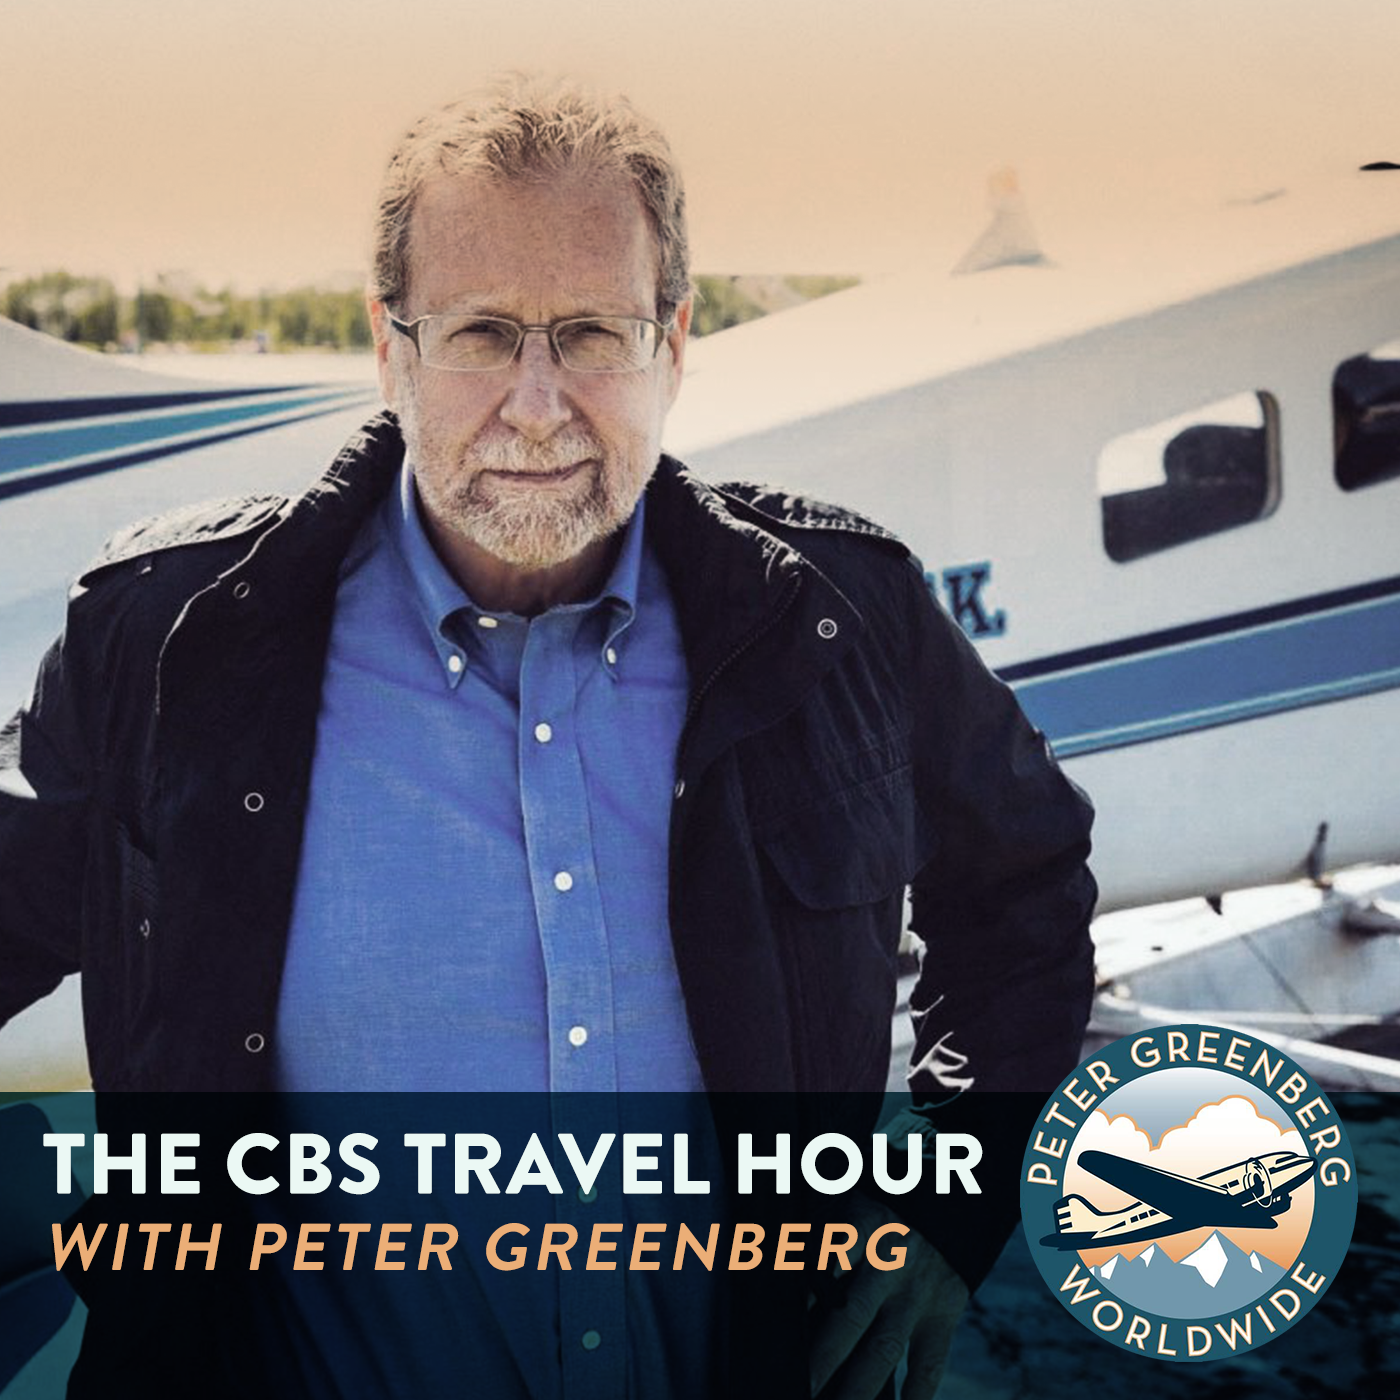 The CBS Travel Hour with Peter Greenberg